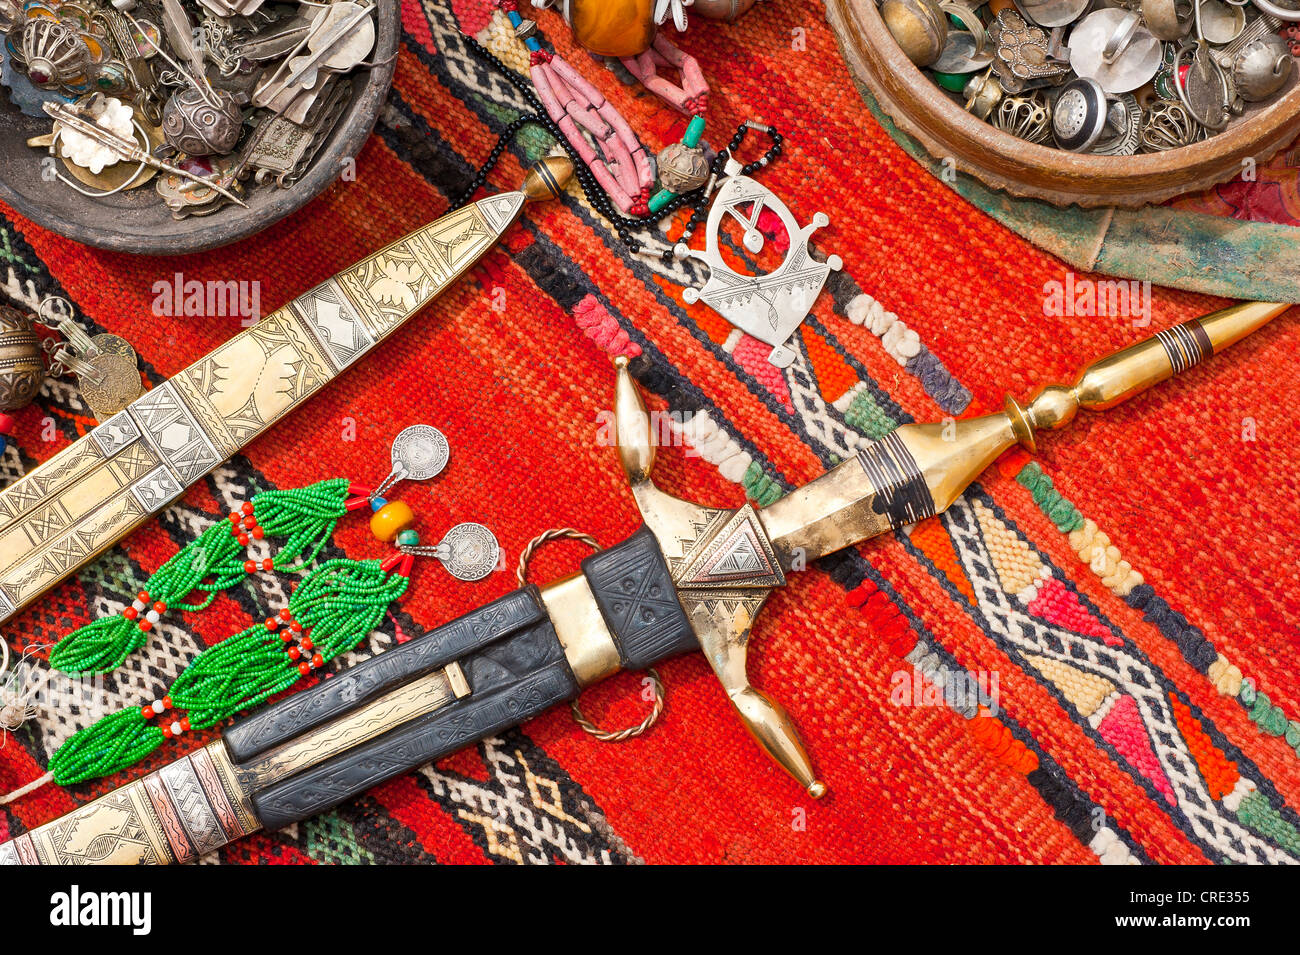 Oriental jewellery and ornate Touareg knives are spread on a carpet, souk, bazaar, Morocco, Africa - Stock Image